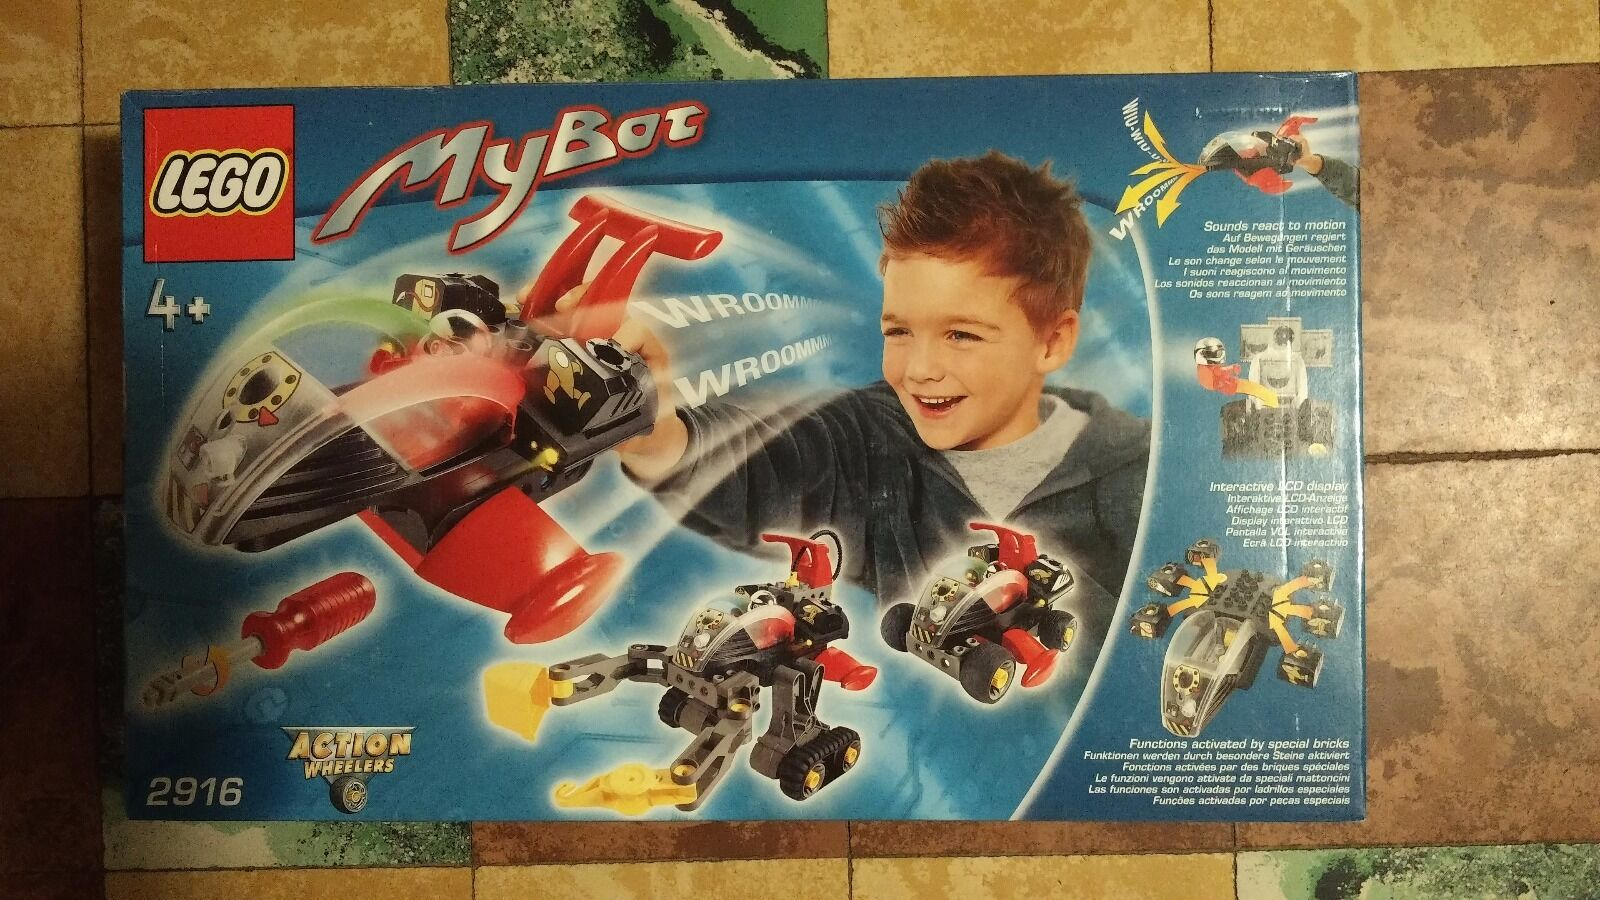 Lego MyBot 2916. Very rare - from 2000 - MISB - Action Wheelers